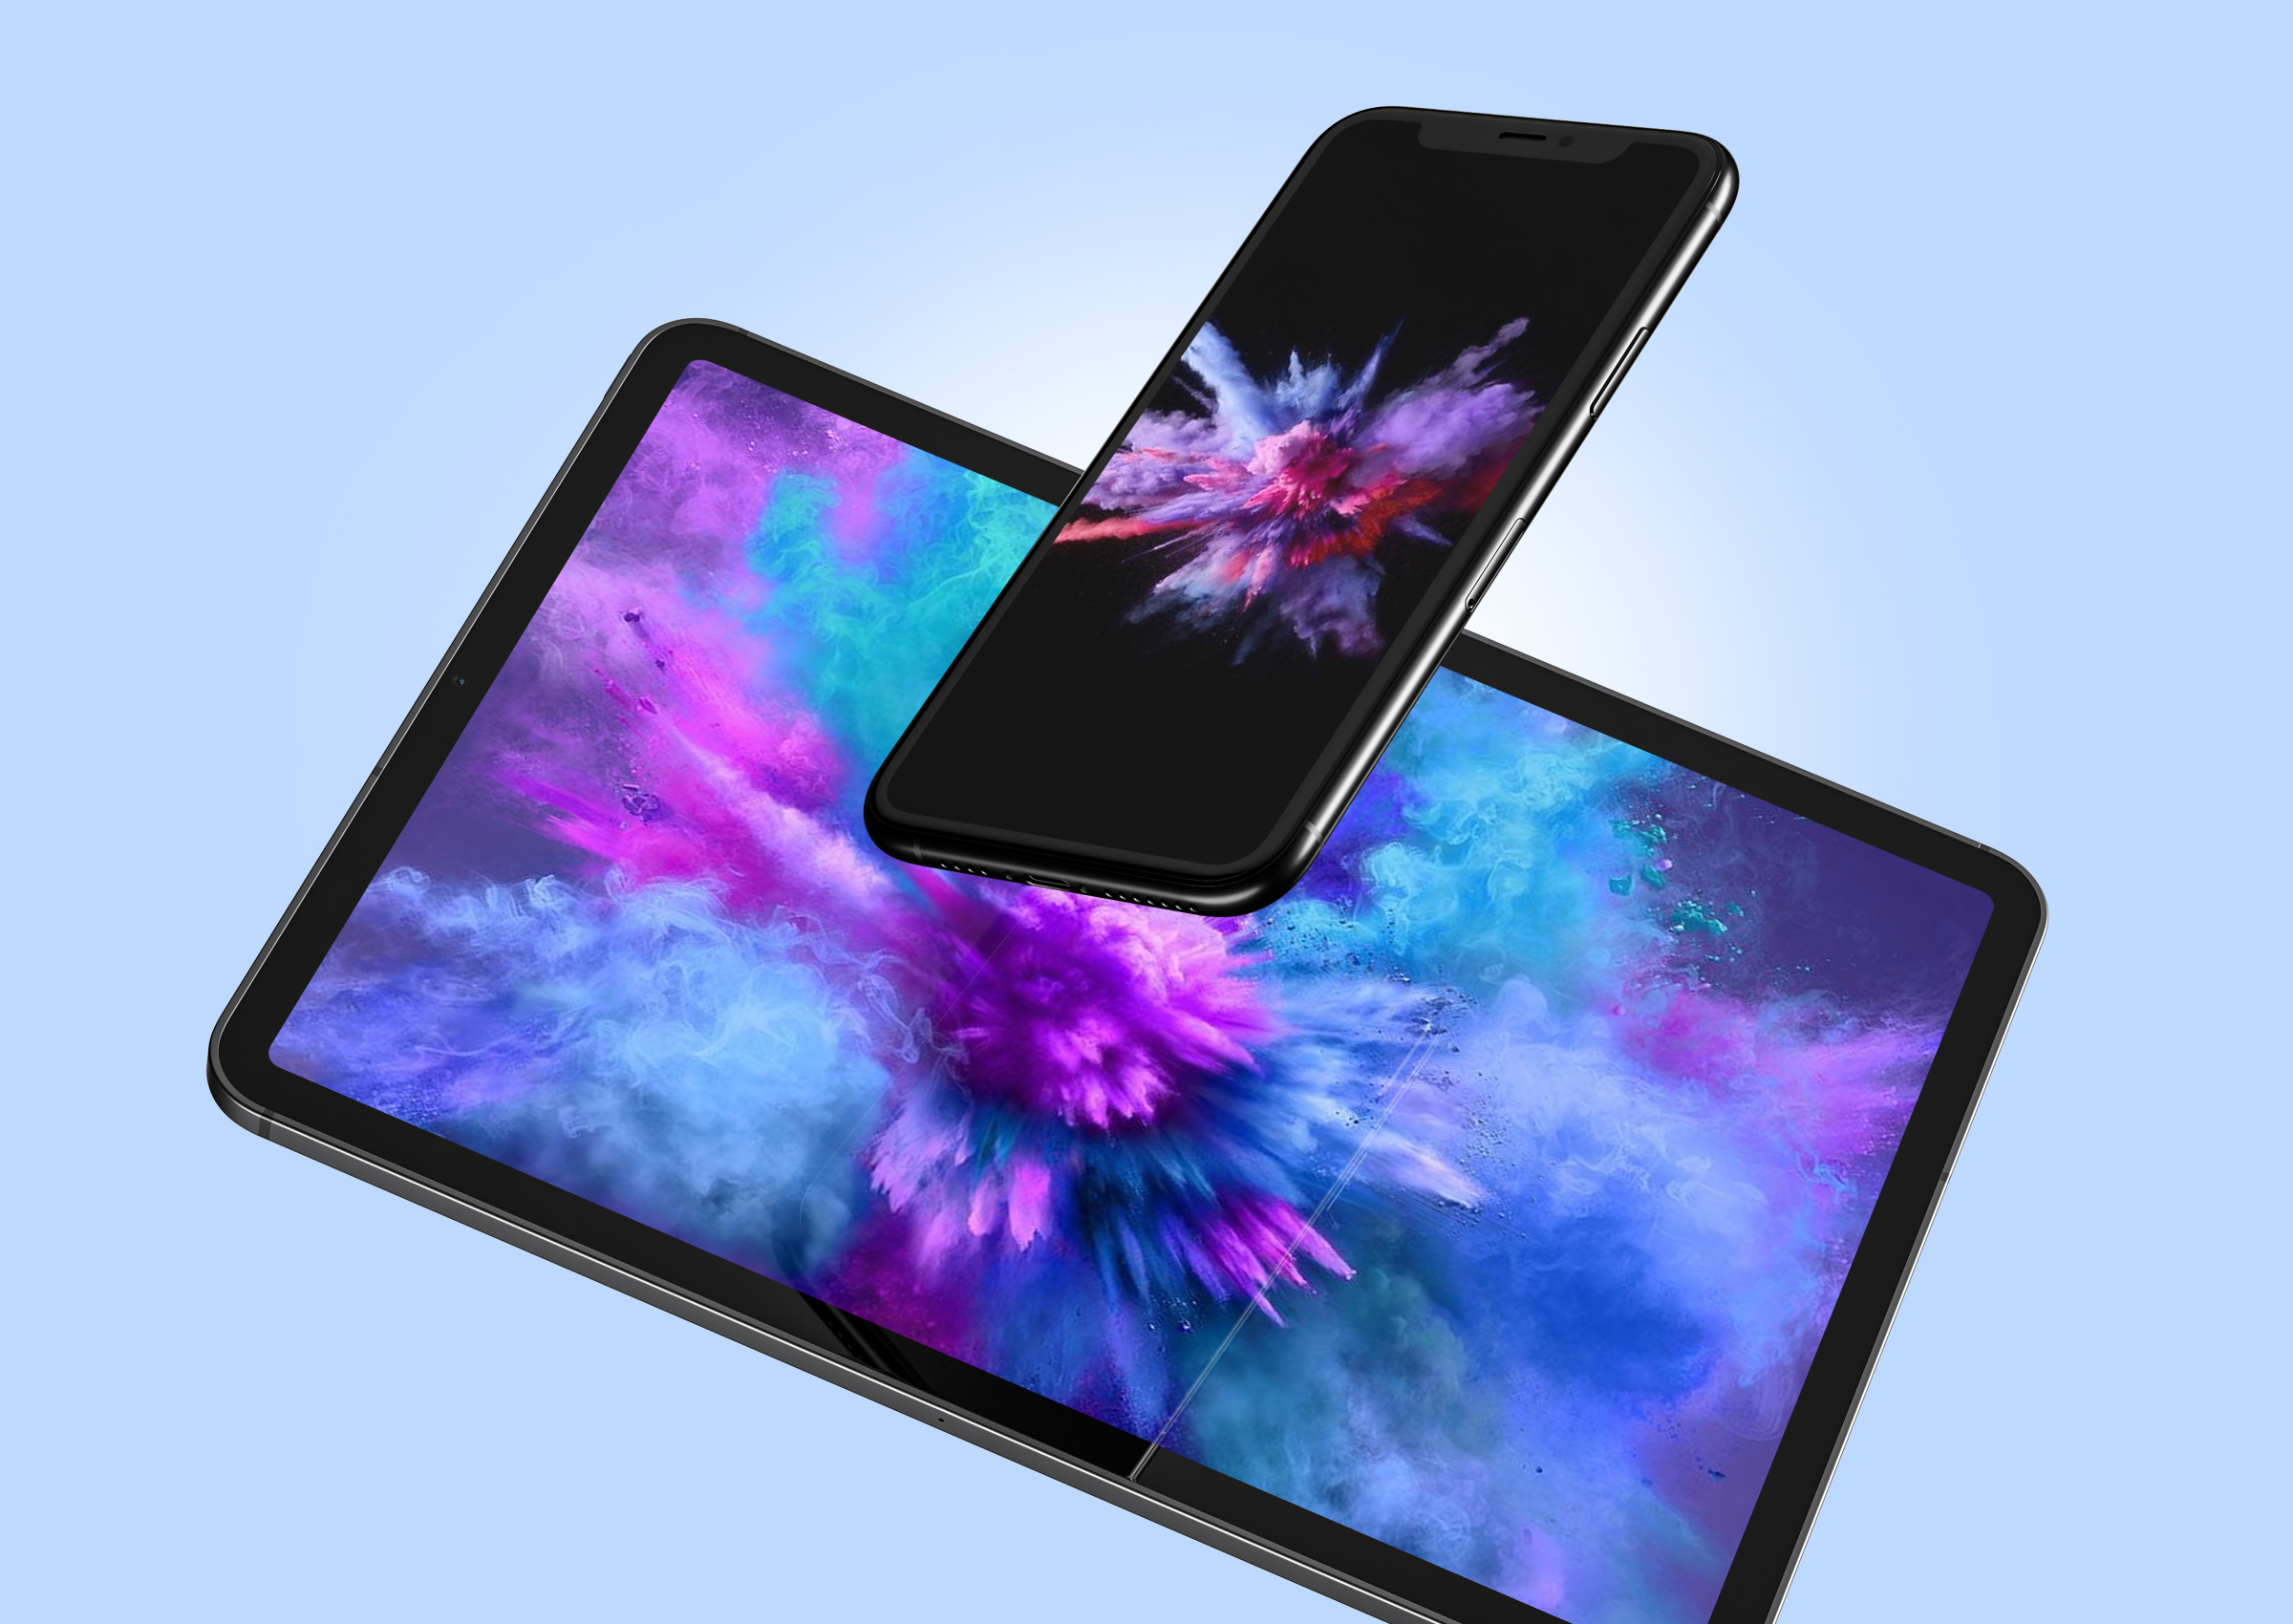 The Superscreen Tablet that Mirrors Personal Smartphone